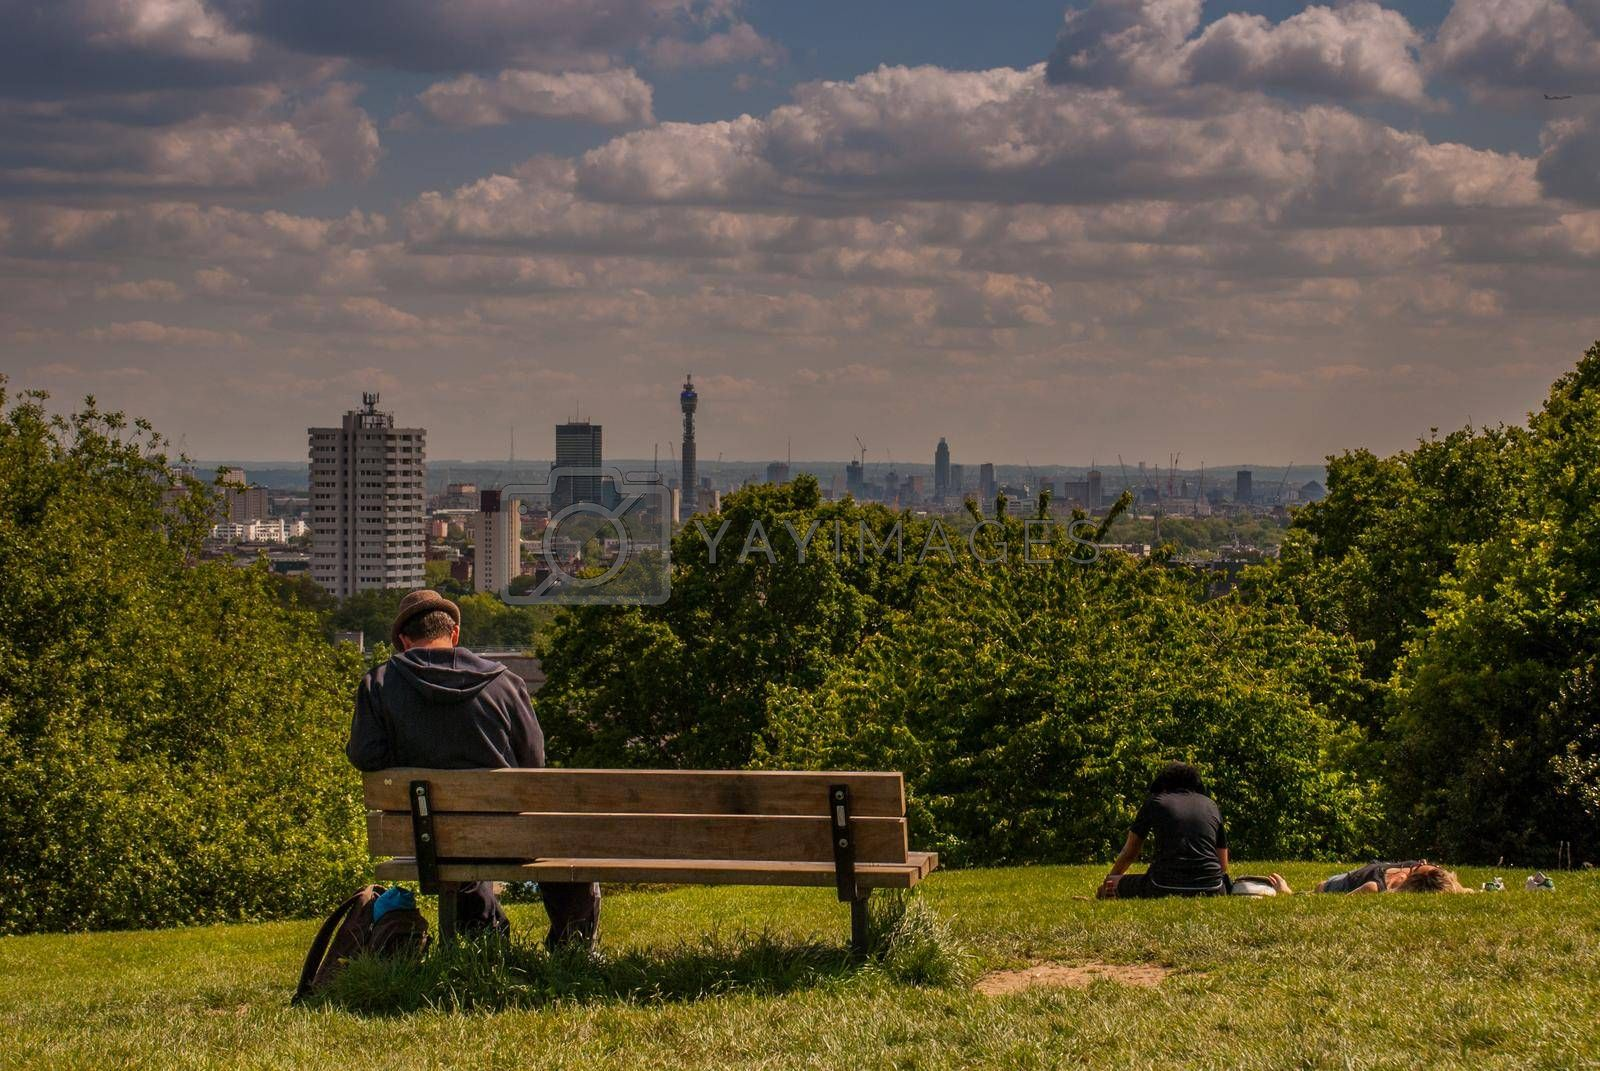 London - May 21, 2019 - A men sit on a wooden chair at Hampstead Heath with a beautiful city view backdrop.